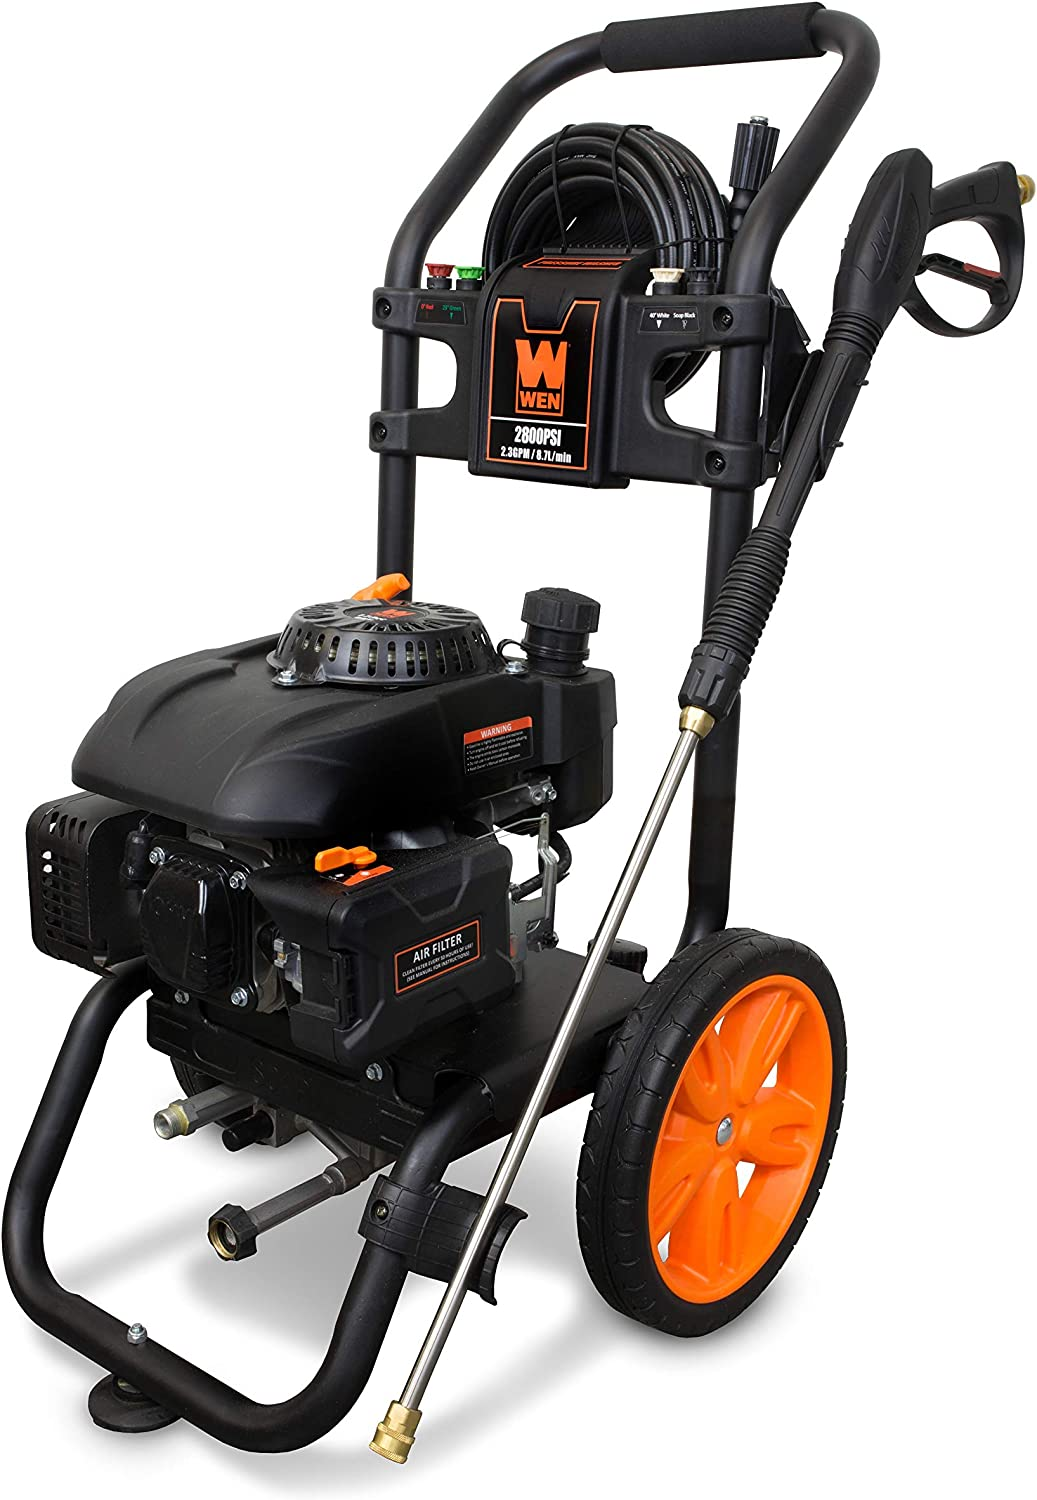 WEN PW2800 Gas-Powered Pressure Washer